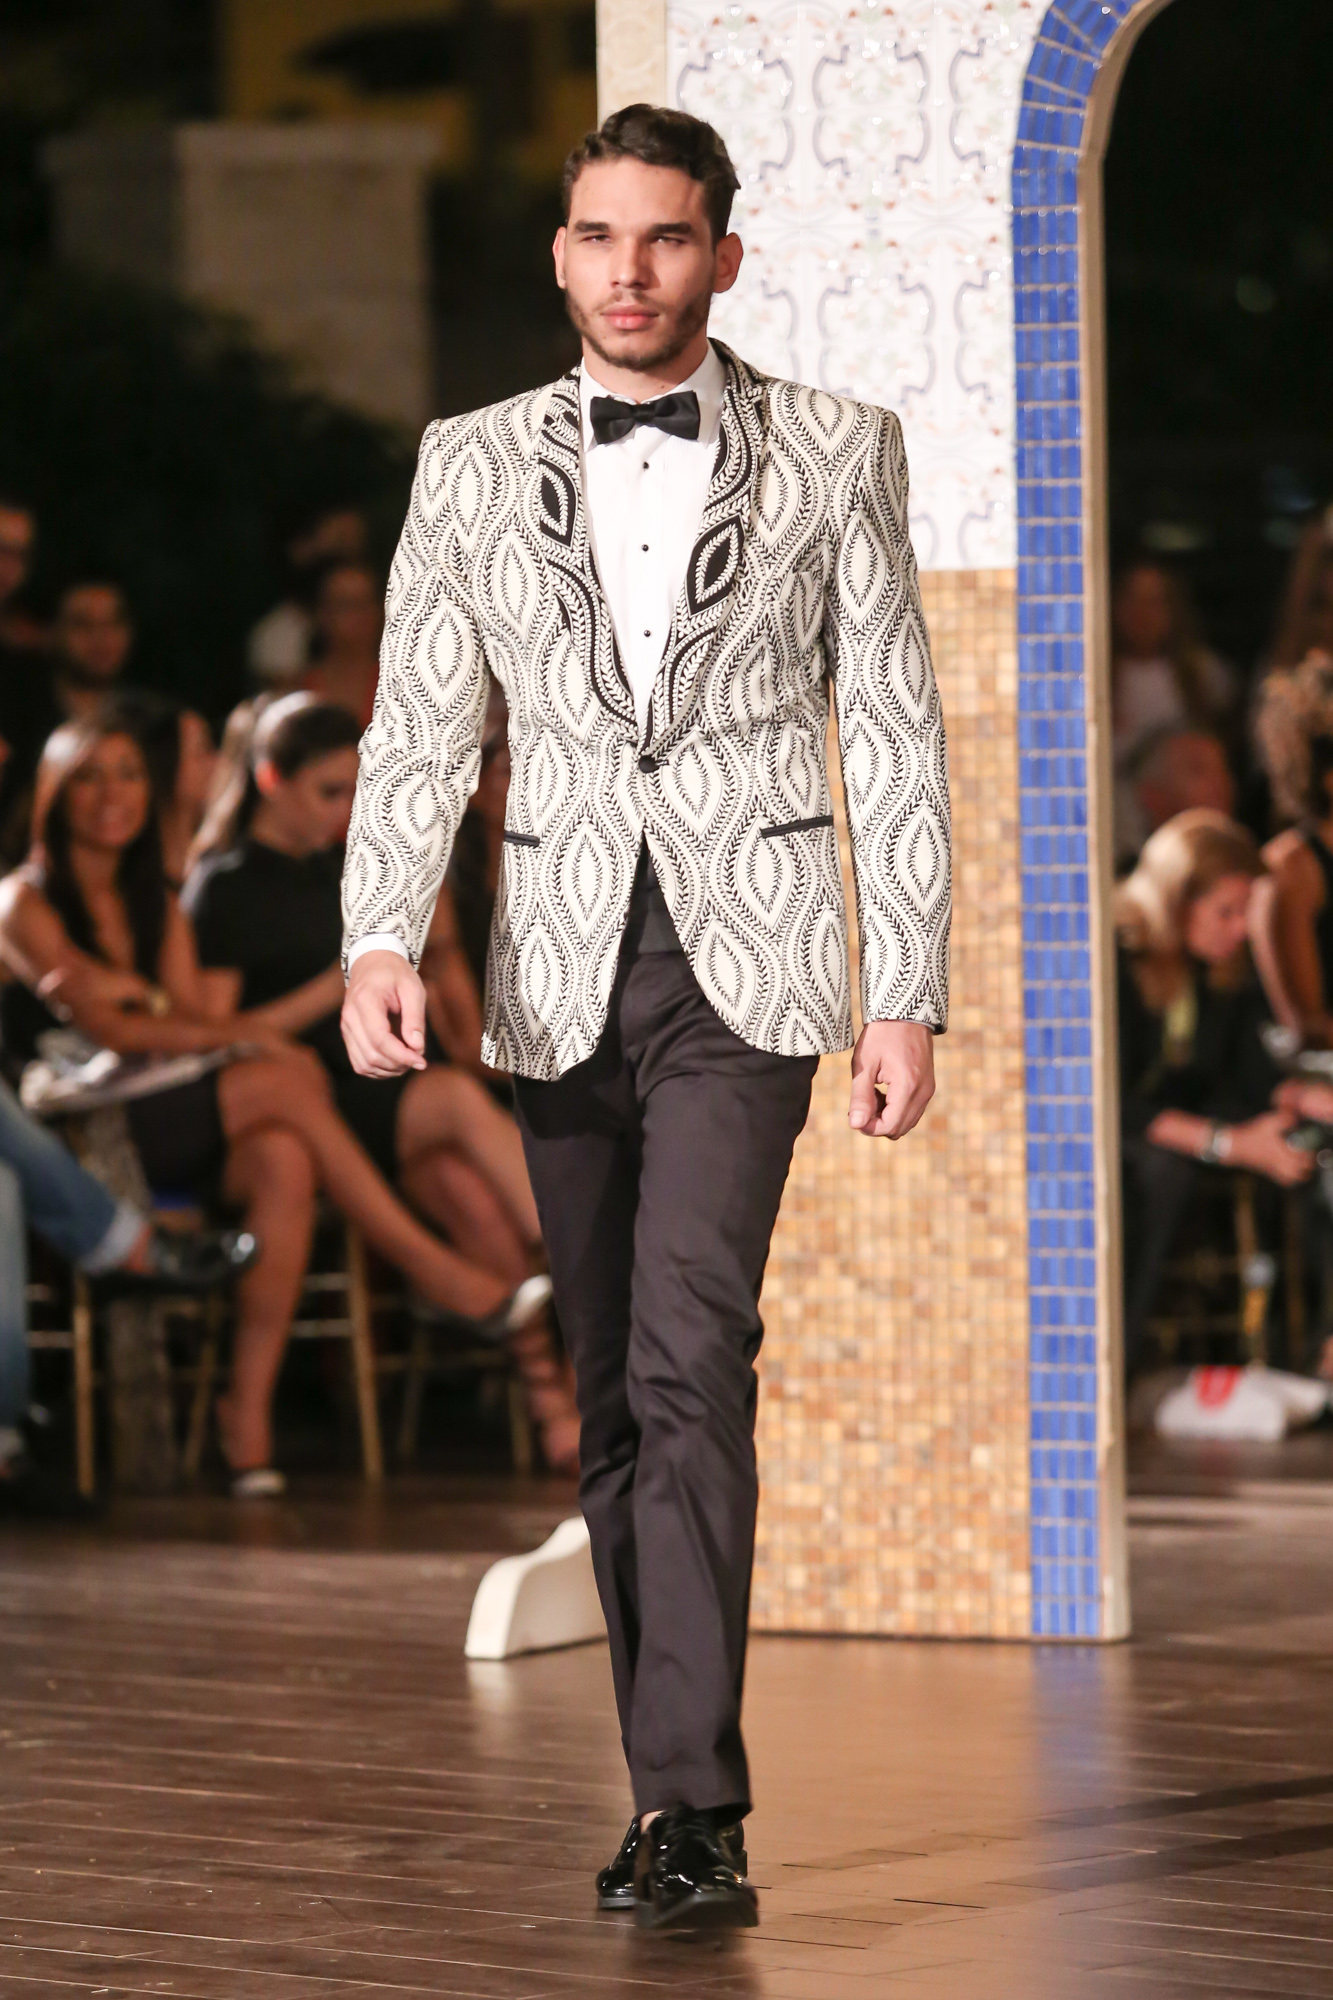 Jose-Jhan-Dominicana-Moda-Freddy-Cruz-2015-SS16-Sagaboi-Look-56